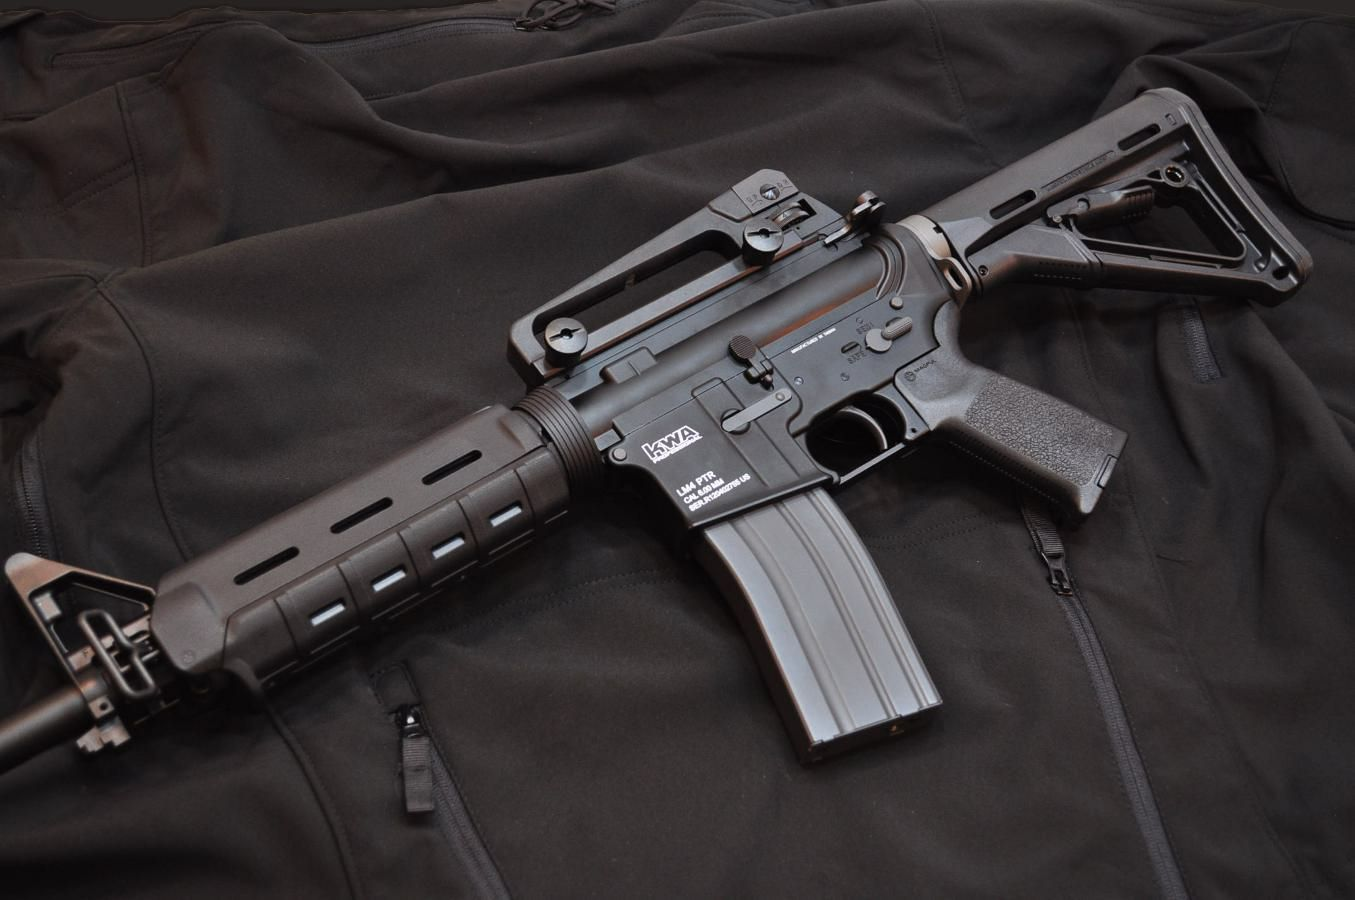 kwa_lm4_ptr_airsoft_training_rifle_magpul